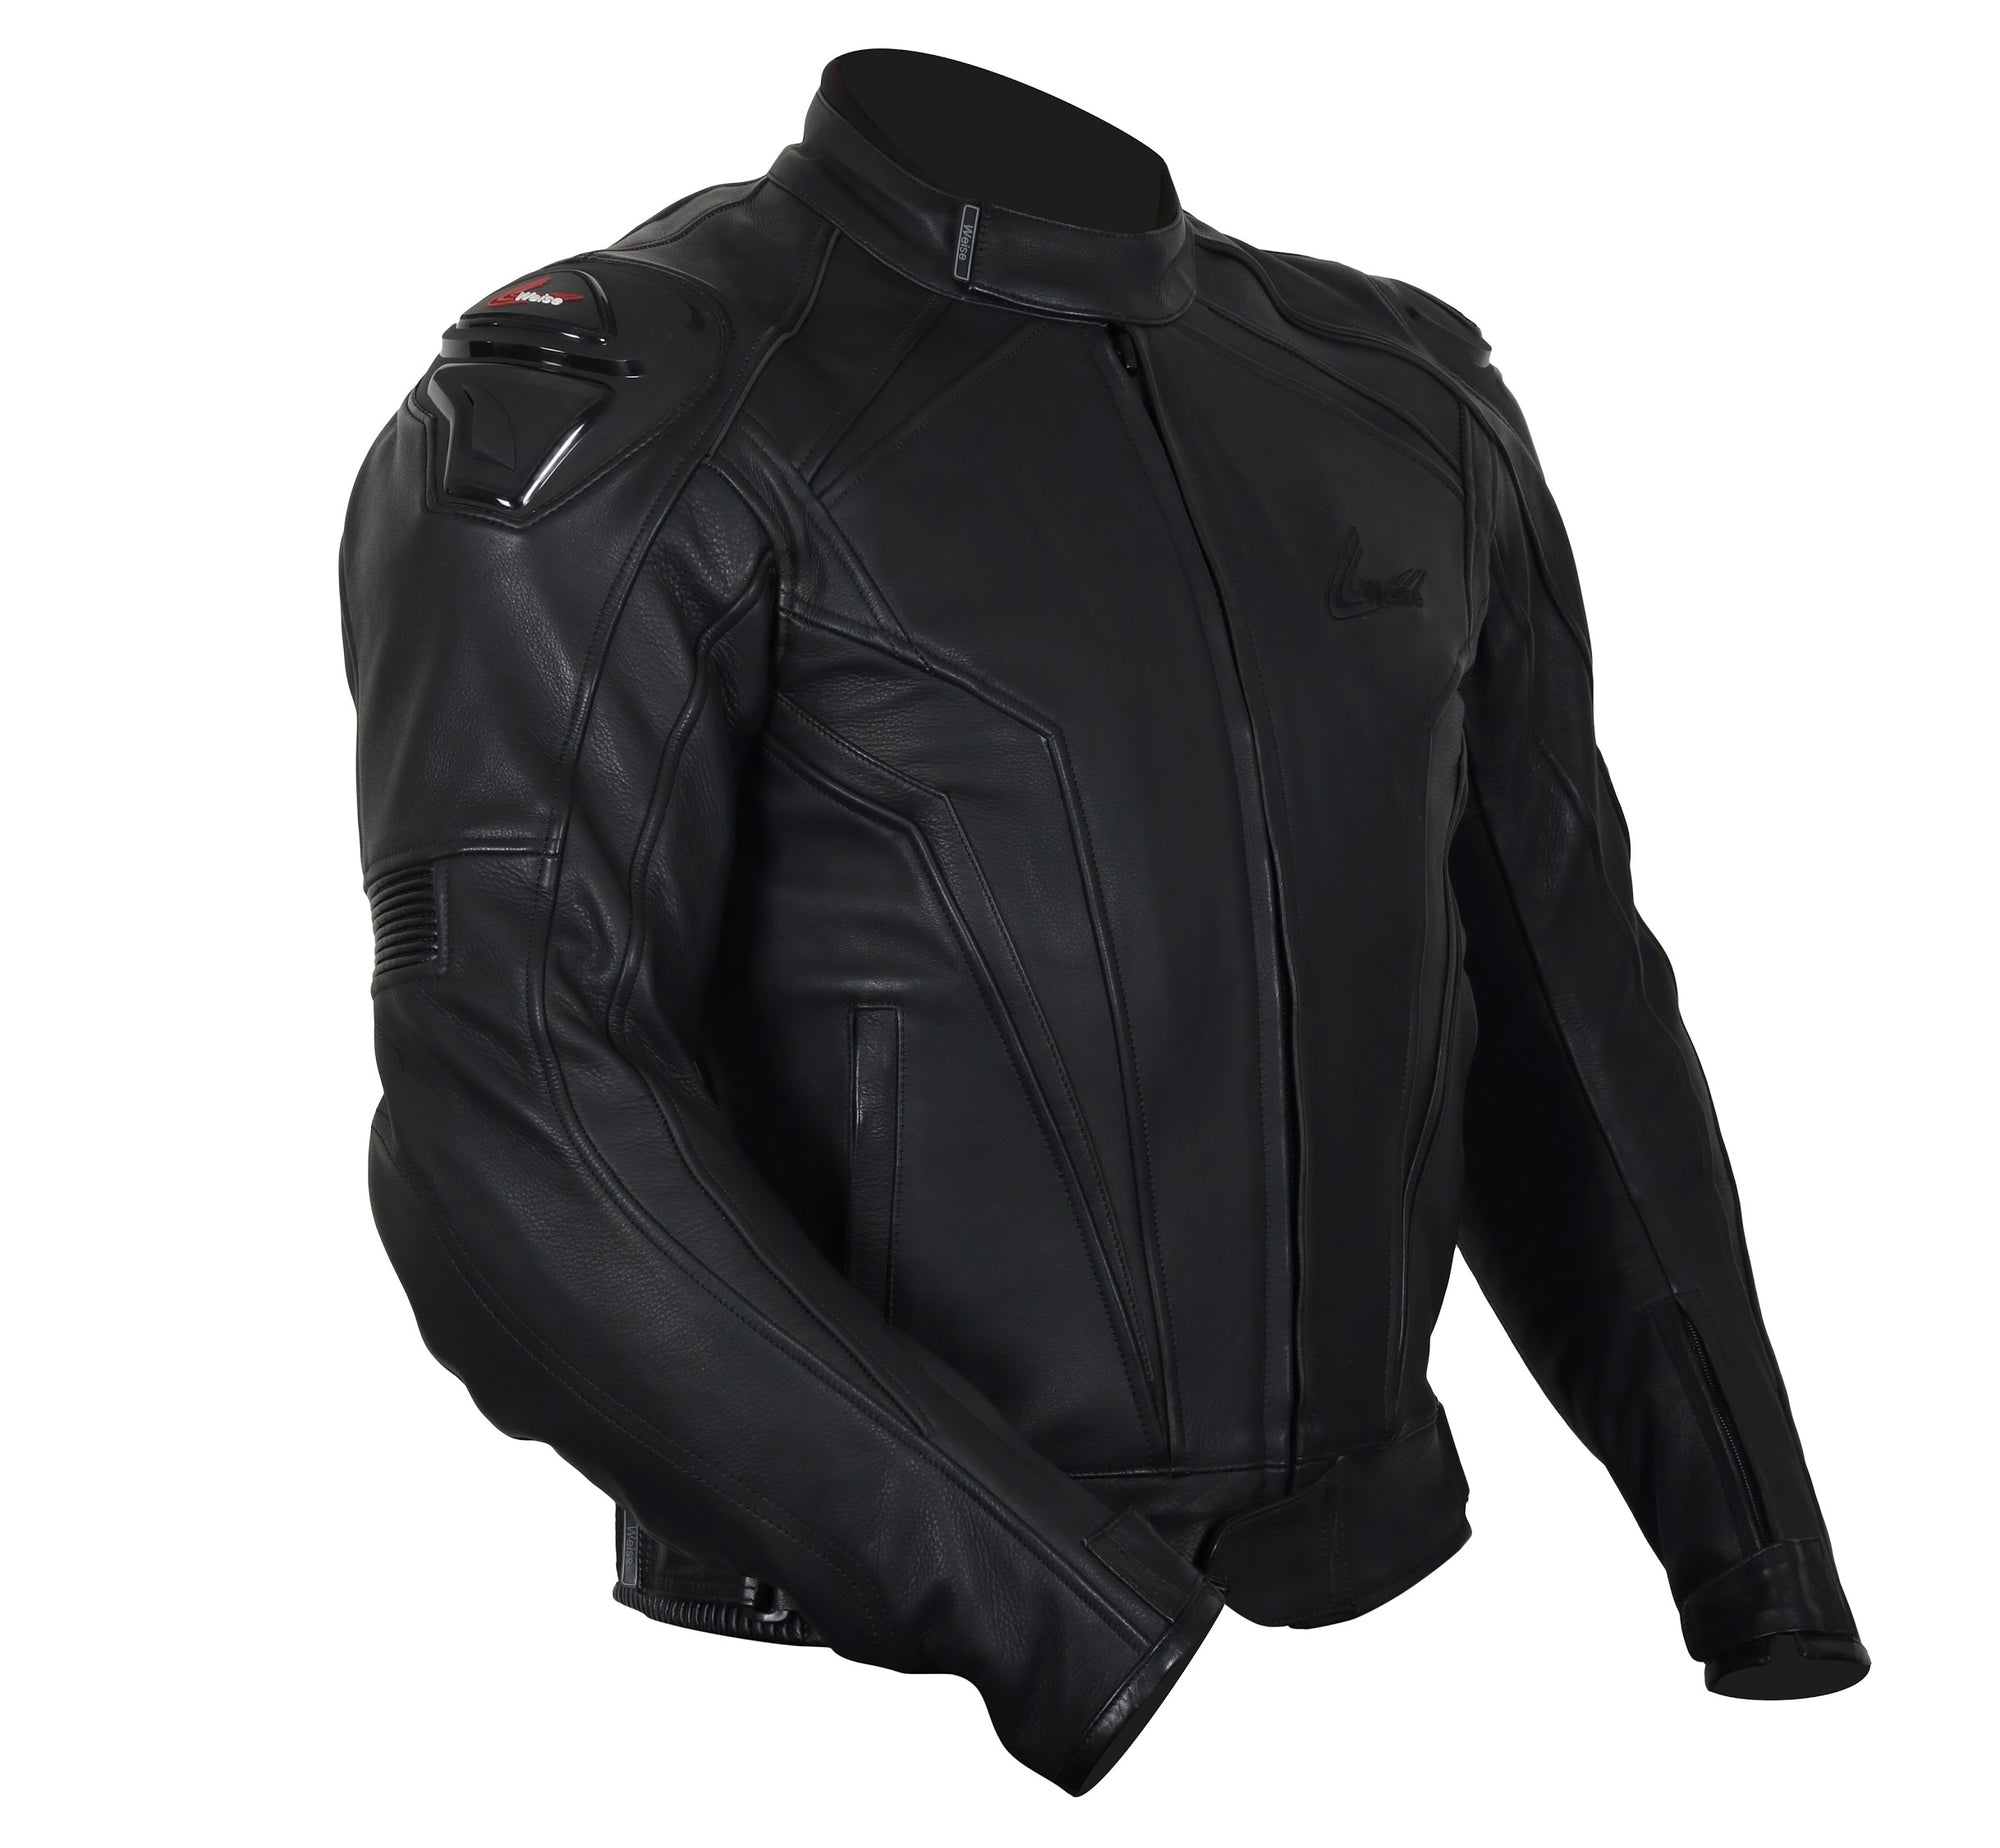 Diablo, Leather Jacket, Weise - Averys Motorcycles